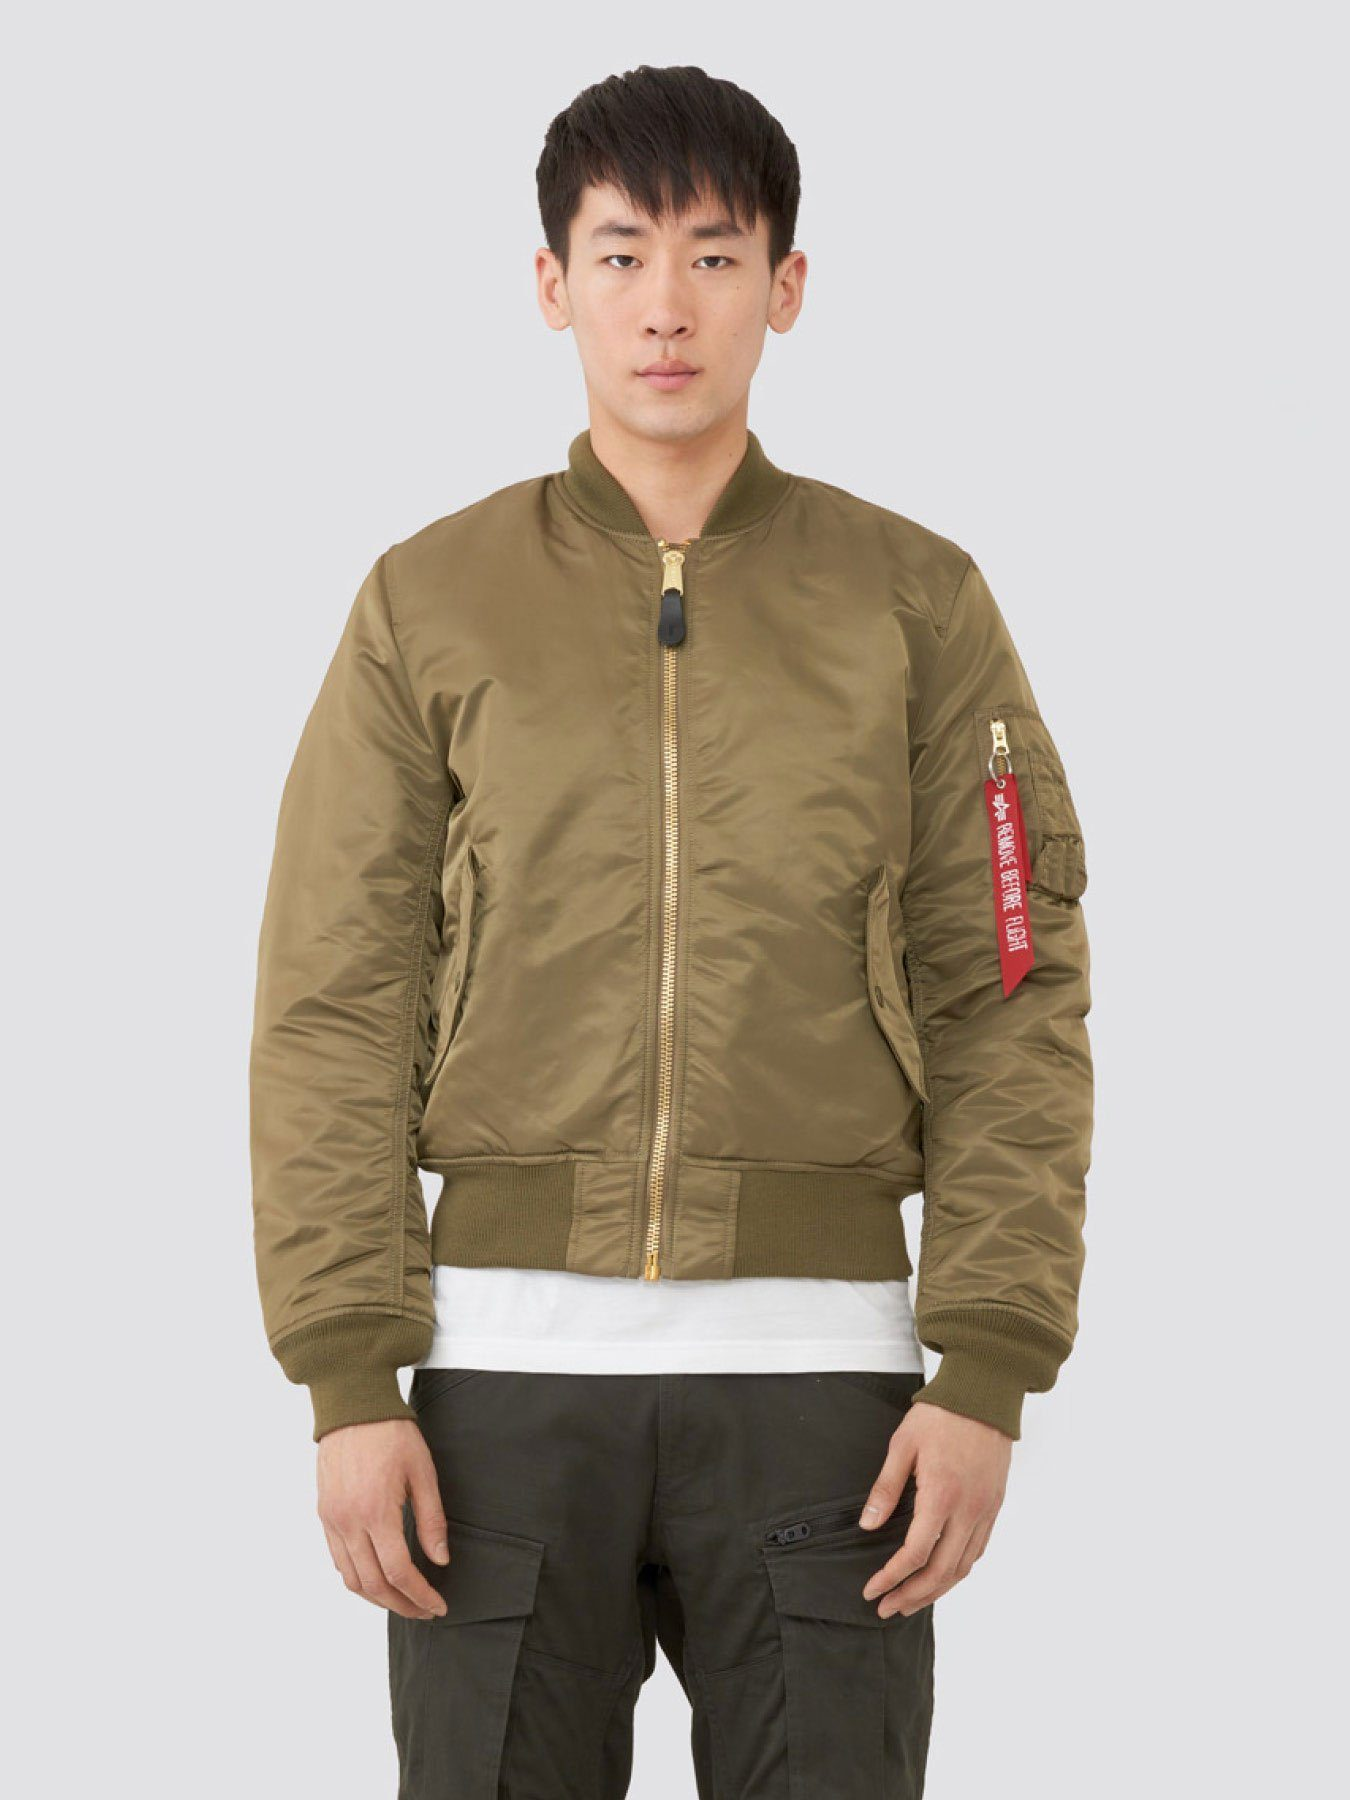 MA-1 BOMBER JACKET SLIM FIT/EUROPEAN FIT (SEASONAL) OUTERWEAR Alpha Industries VINTAGE OLIVE XS